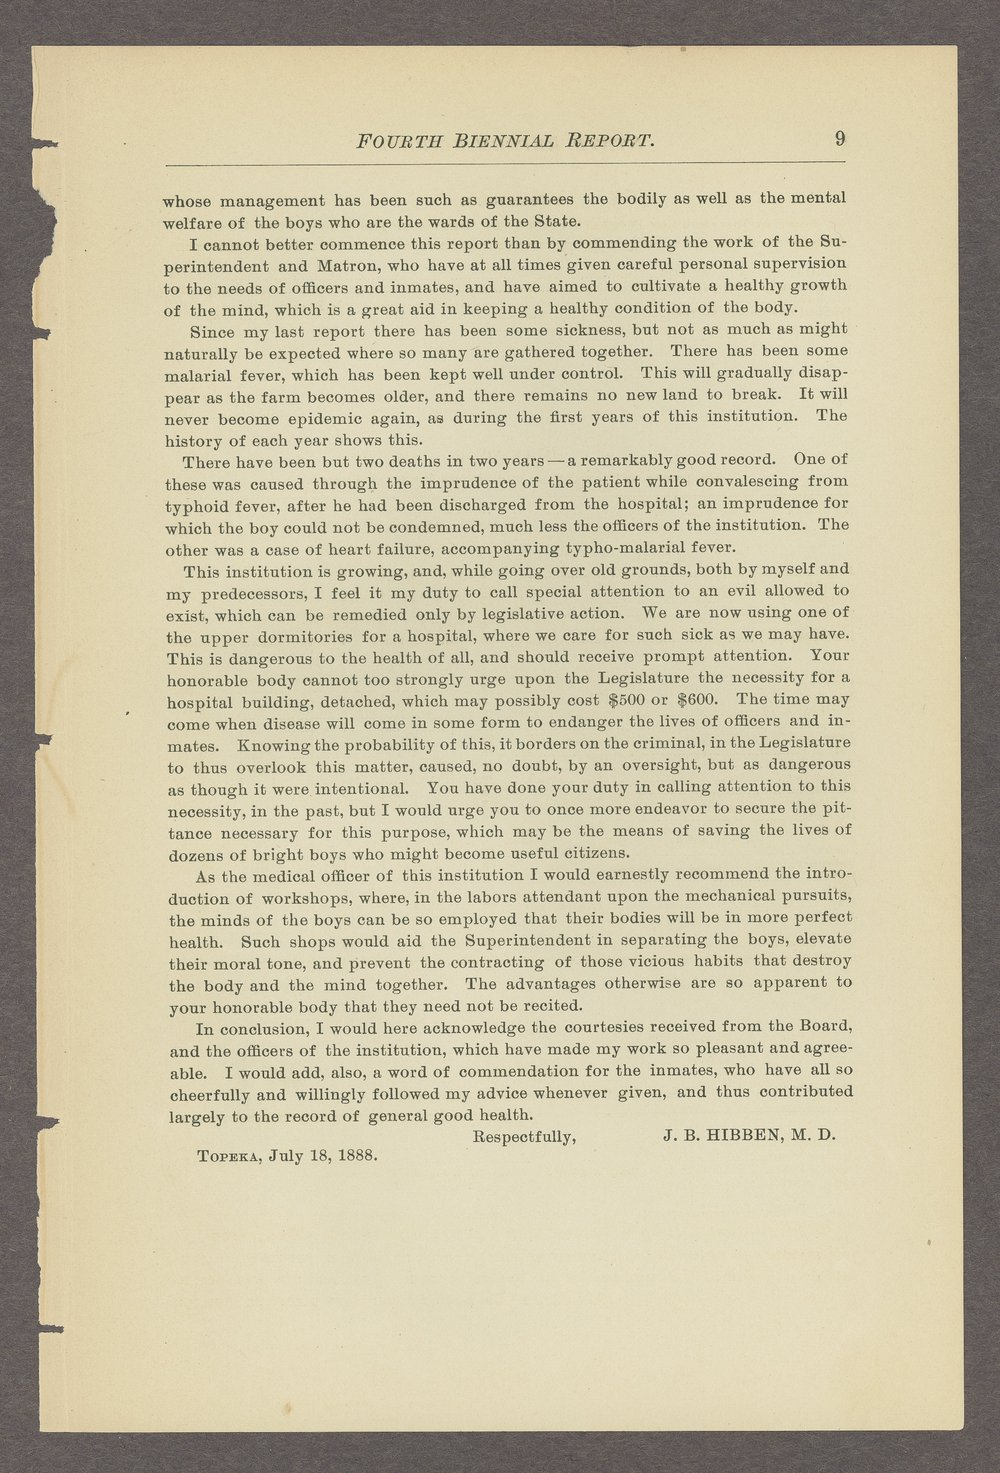 Biennial report of the State Reform School, 1888 - 9